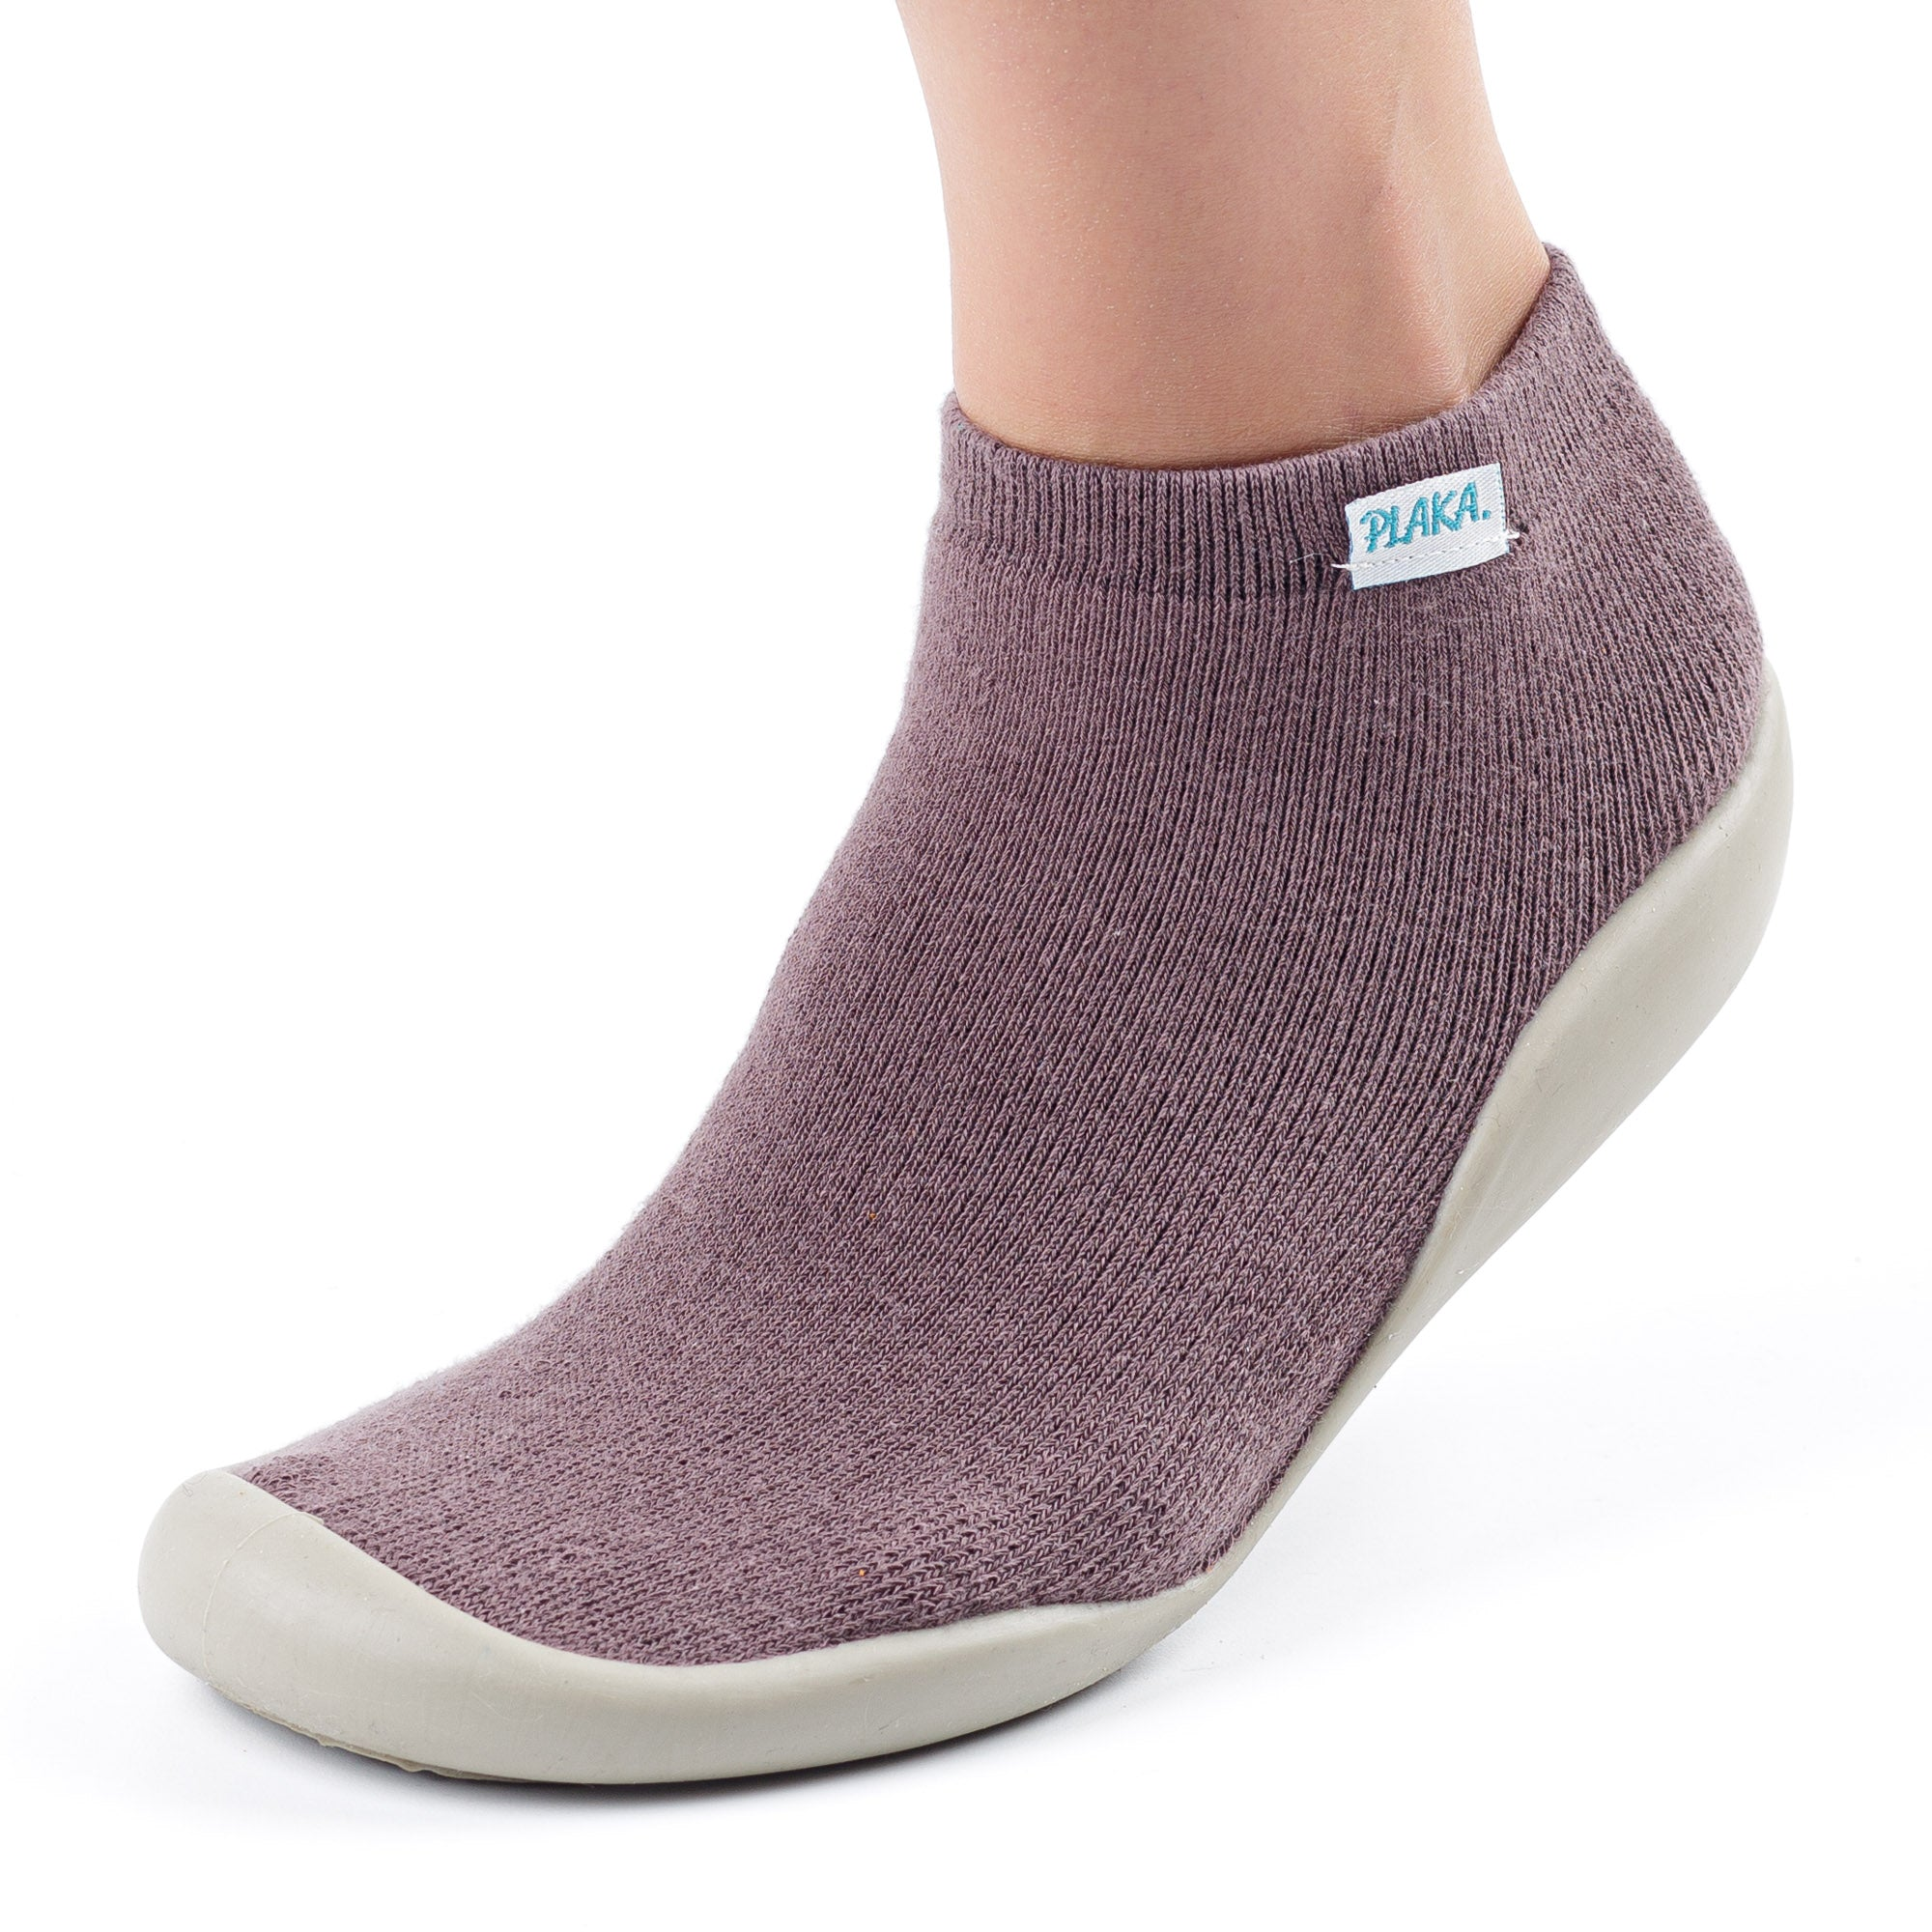 Slipper Socks for Women | Eggplant